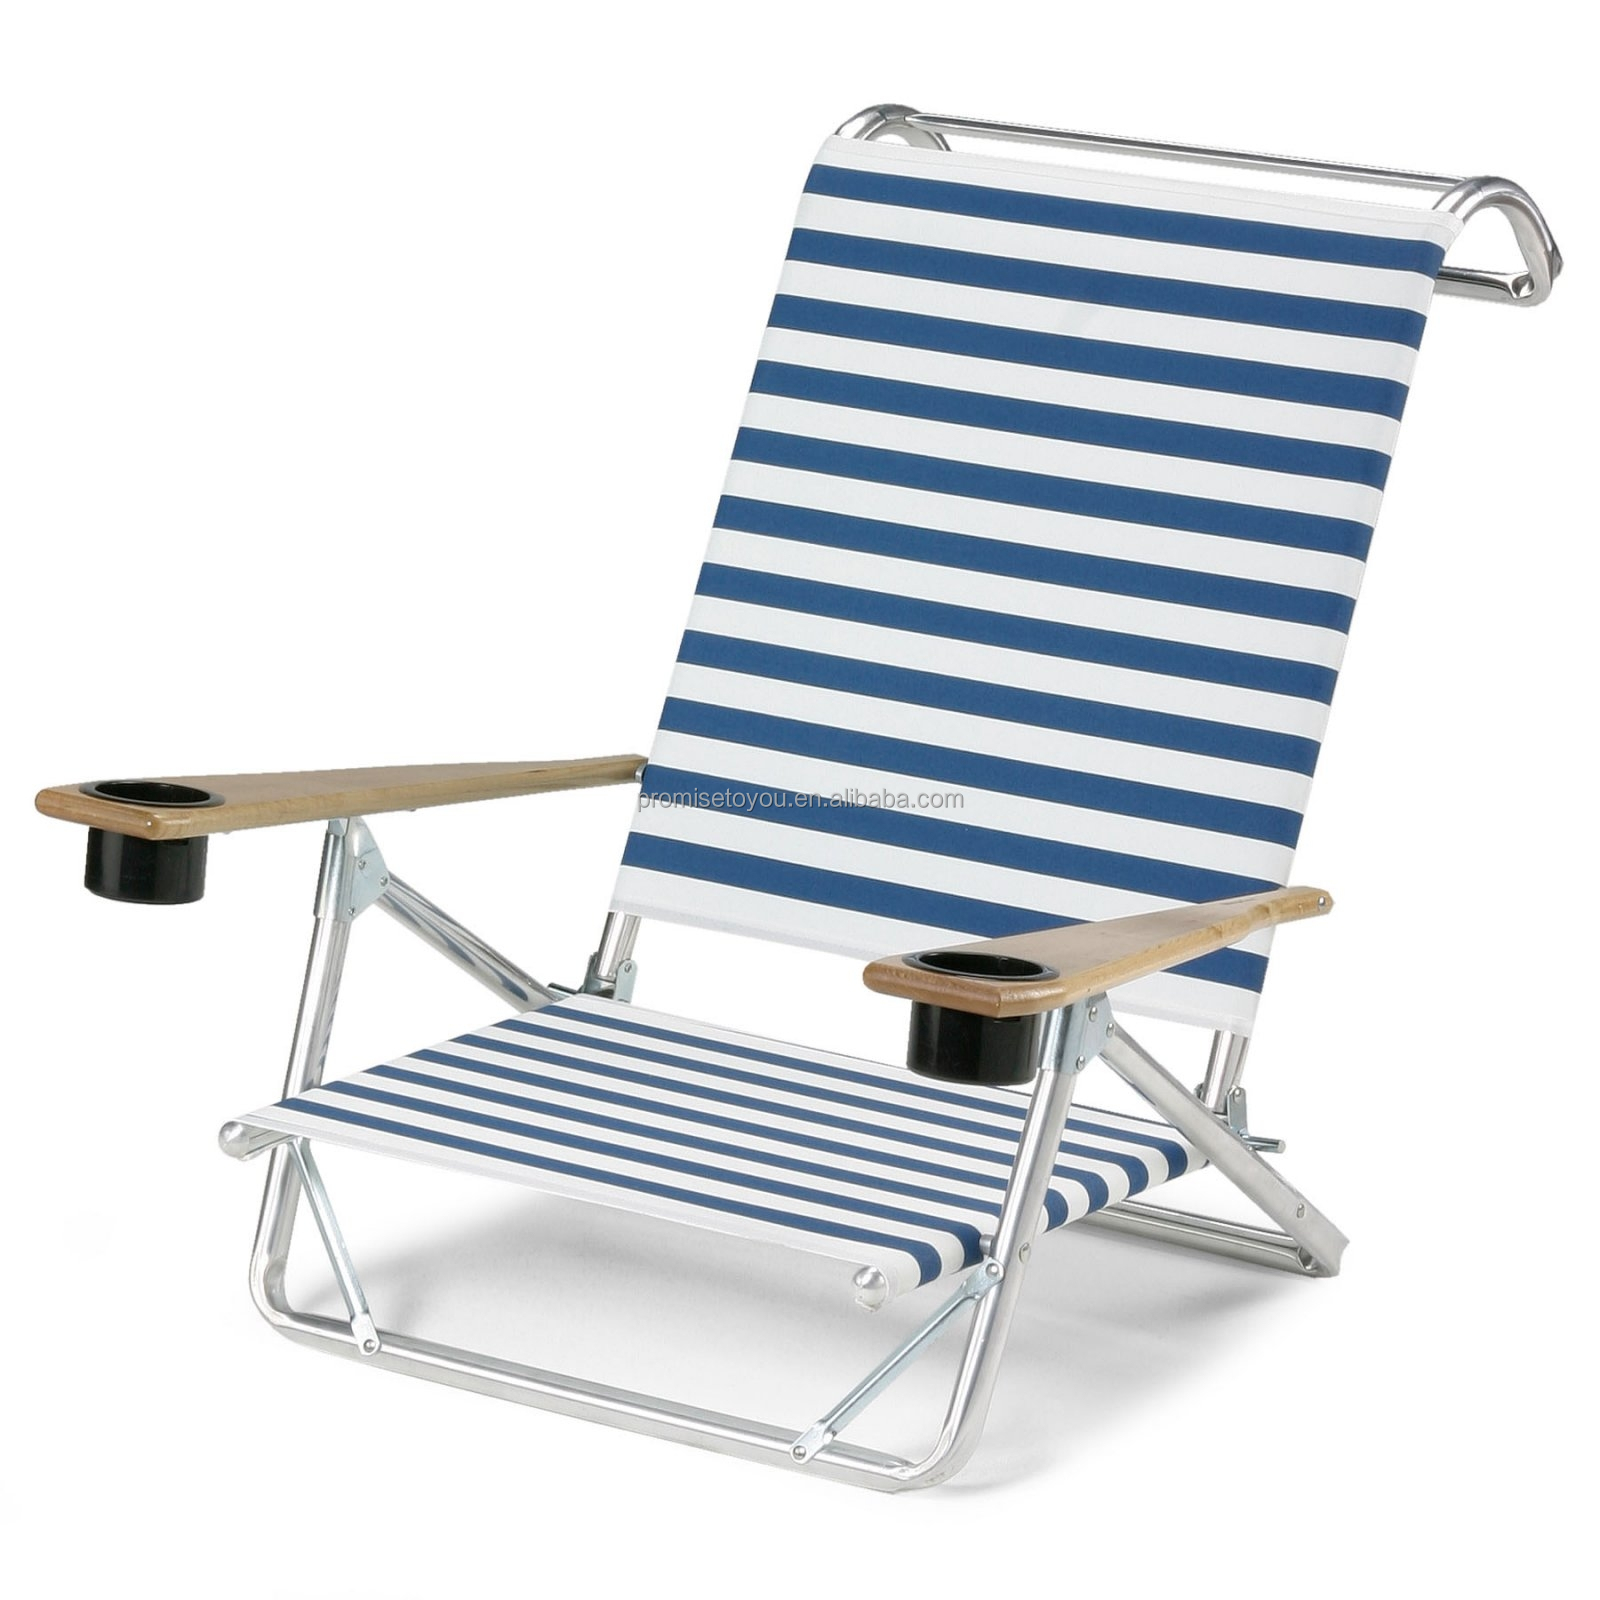 fishing cooler chair black covers for sale beach 5 position with cup holder insulated